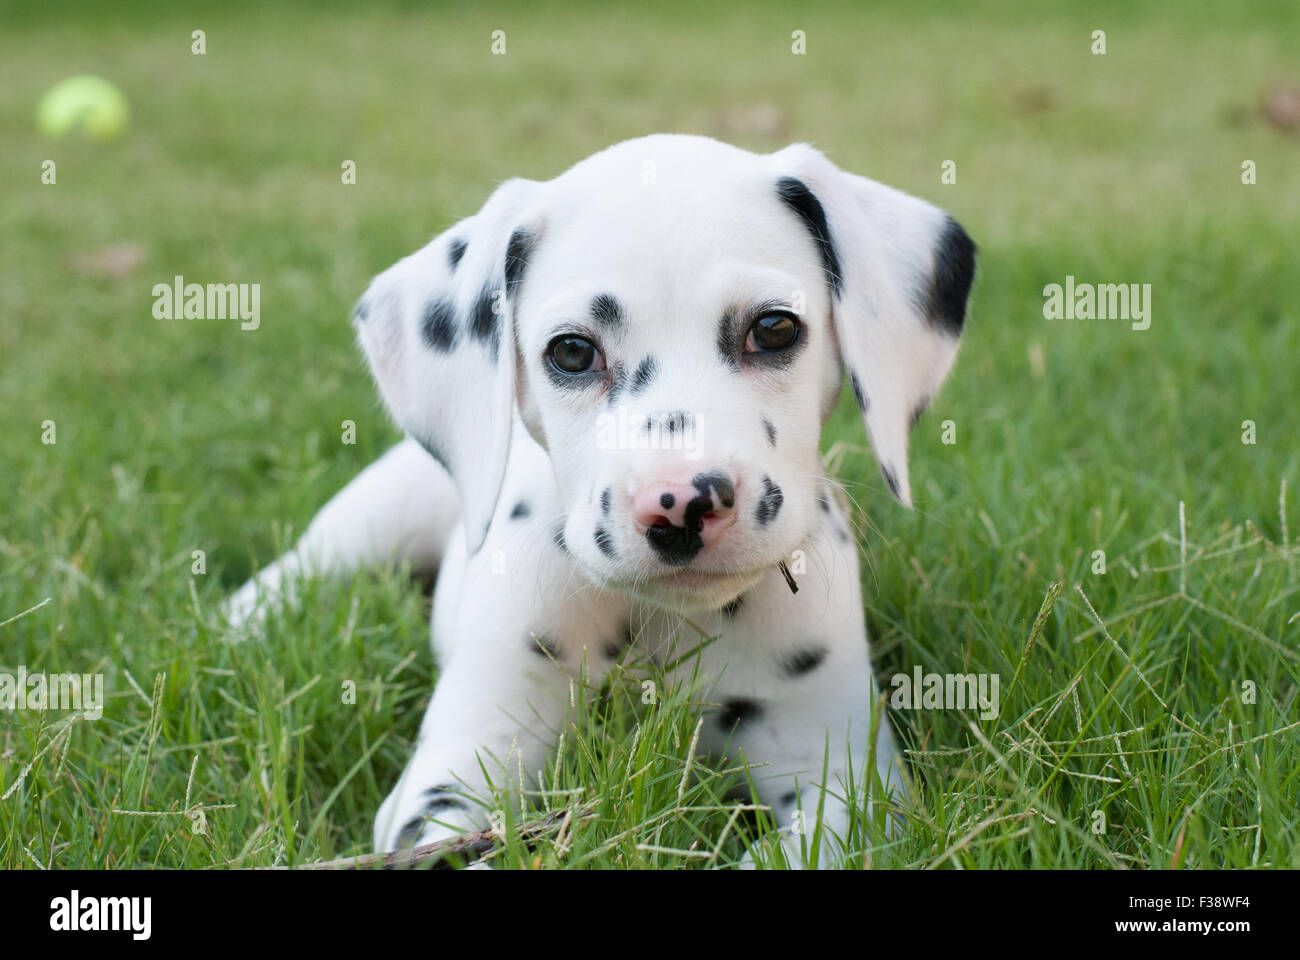 Pure Bred Dalmatian Puppy at 8 weeks old - Stock Image